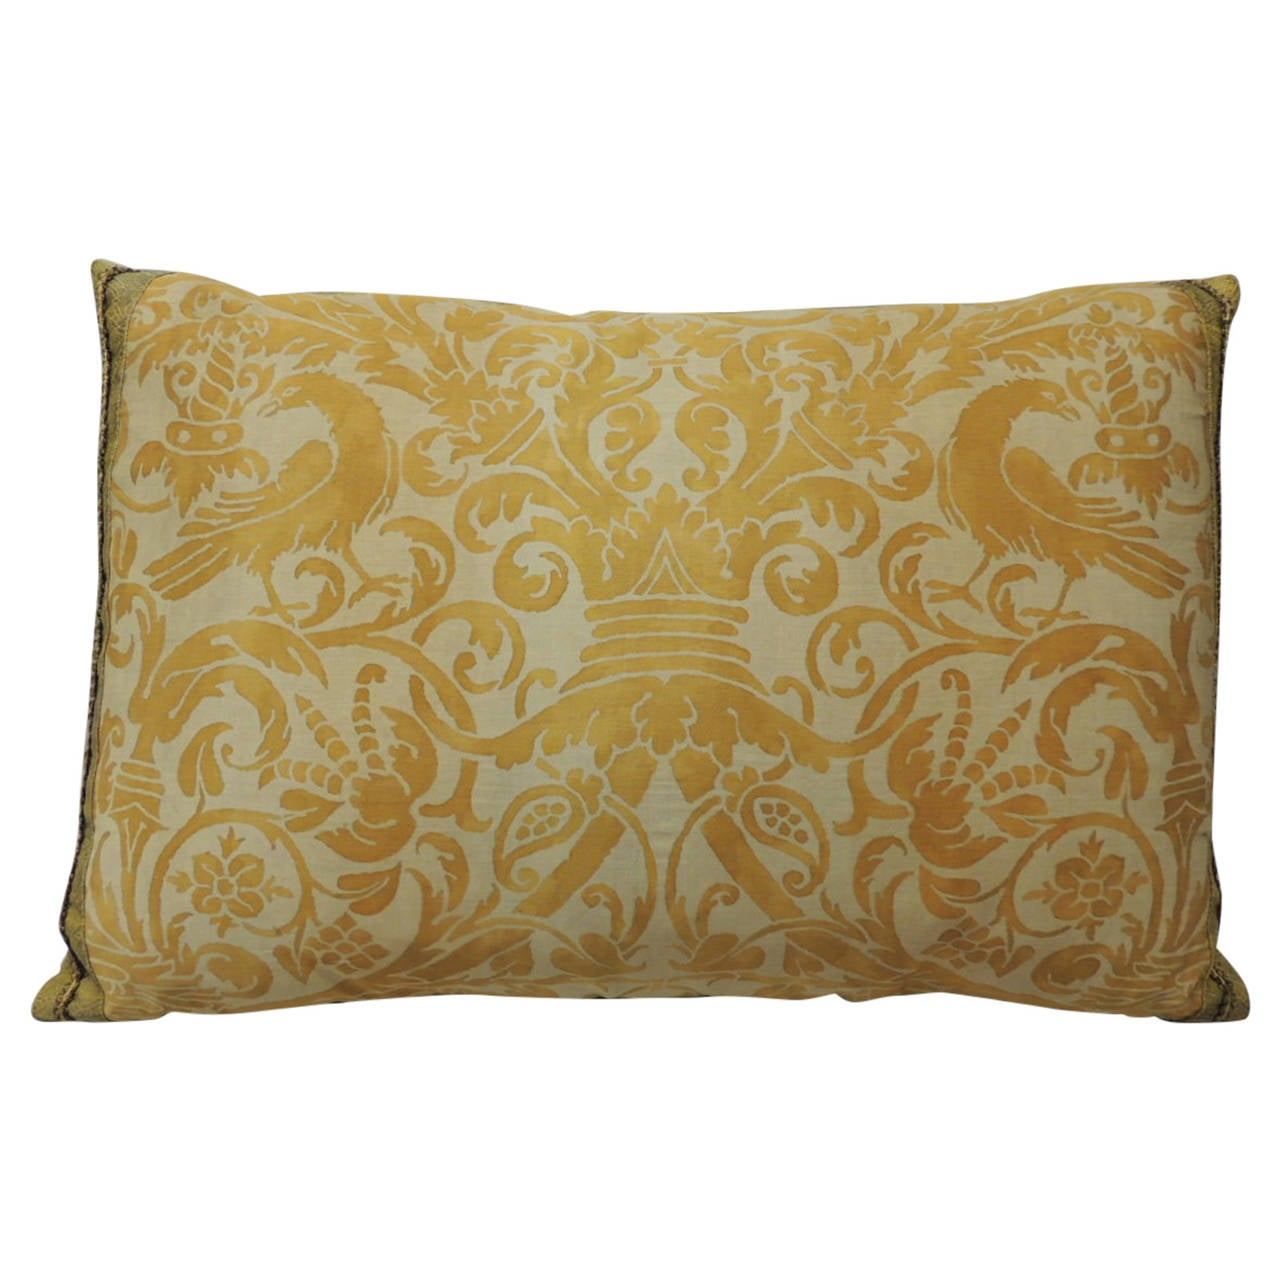 Throw Pillow Bolster : Vintage Yellow Fortuny Uccelli Bolster Throw Pillow For Sale at 1stdibs